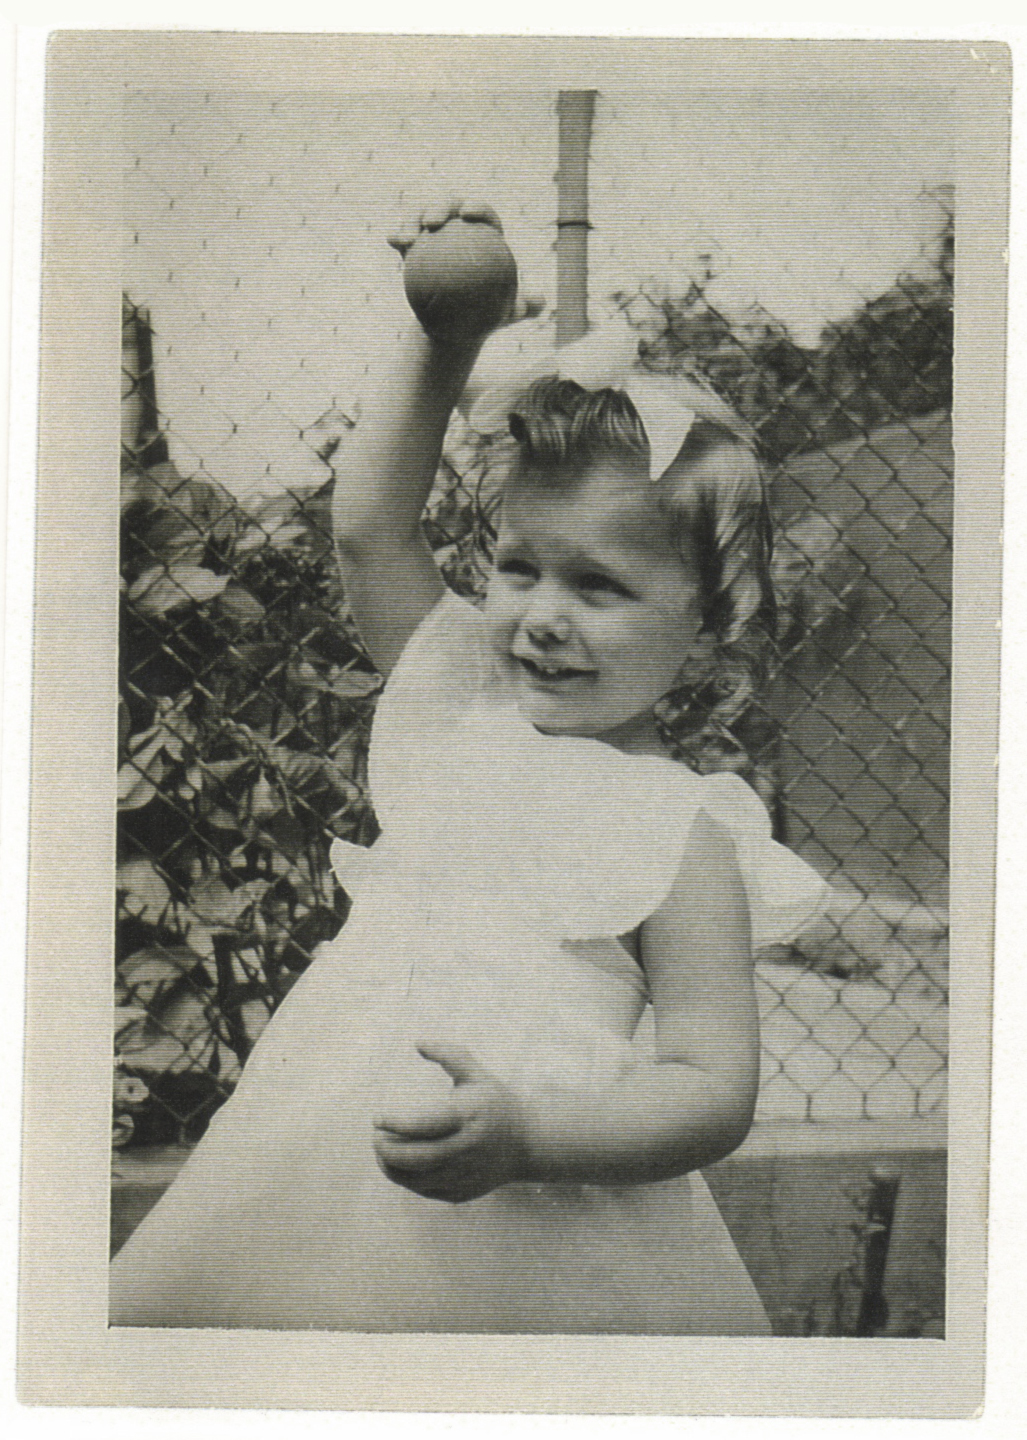 My mom 1946 / Rosemary 2.5 years old